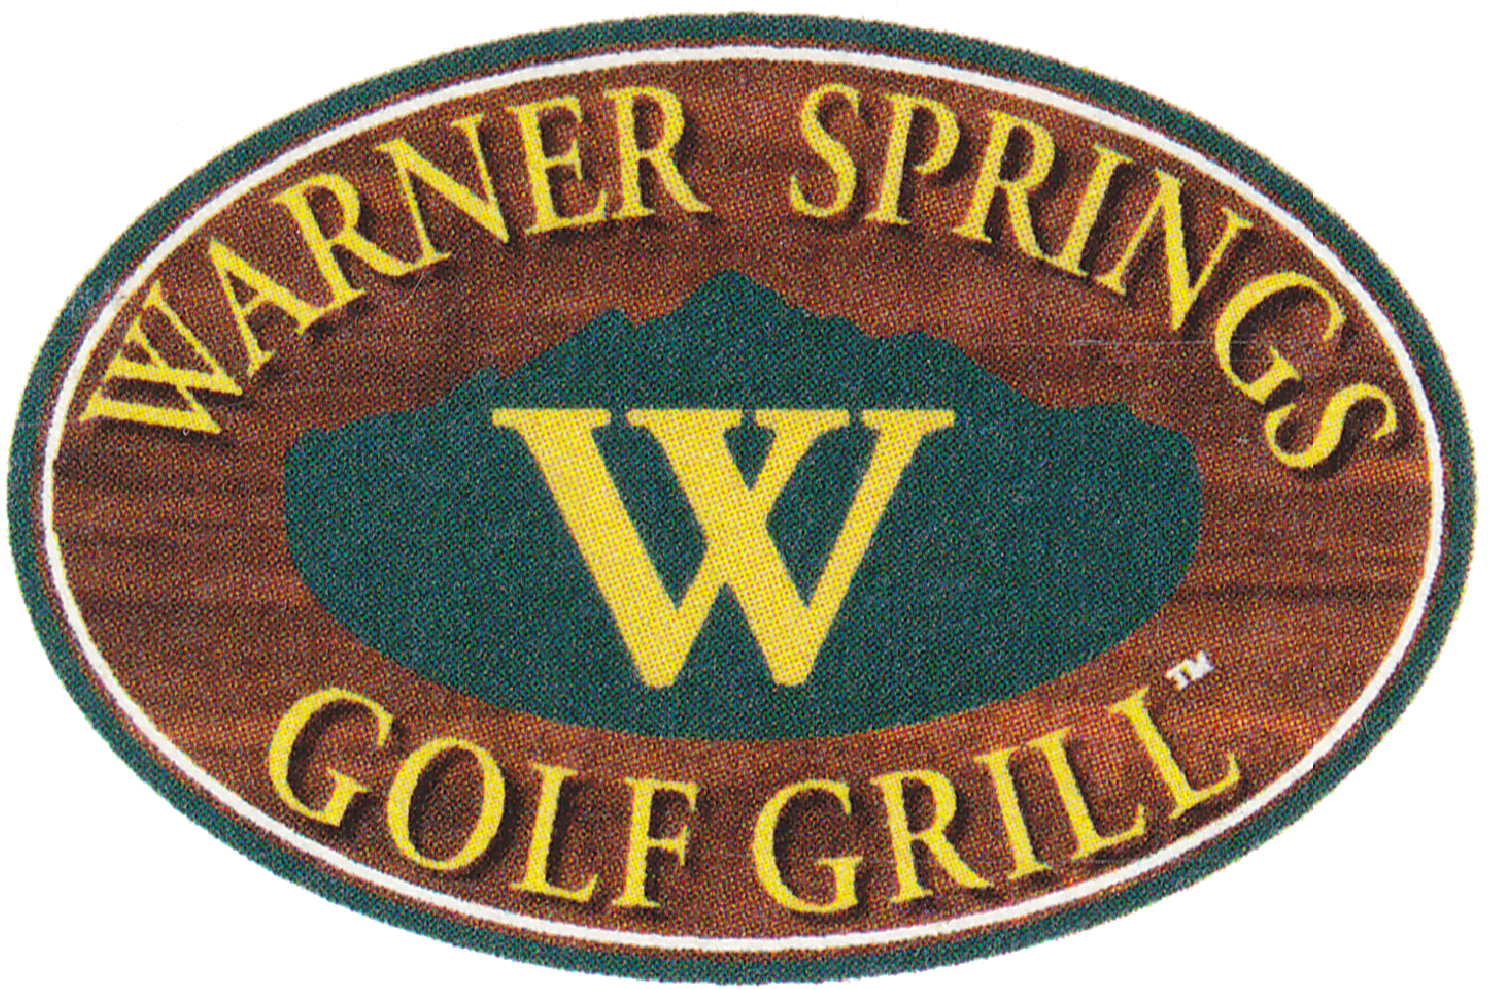 Warner Springs Golf Grill